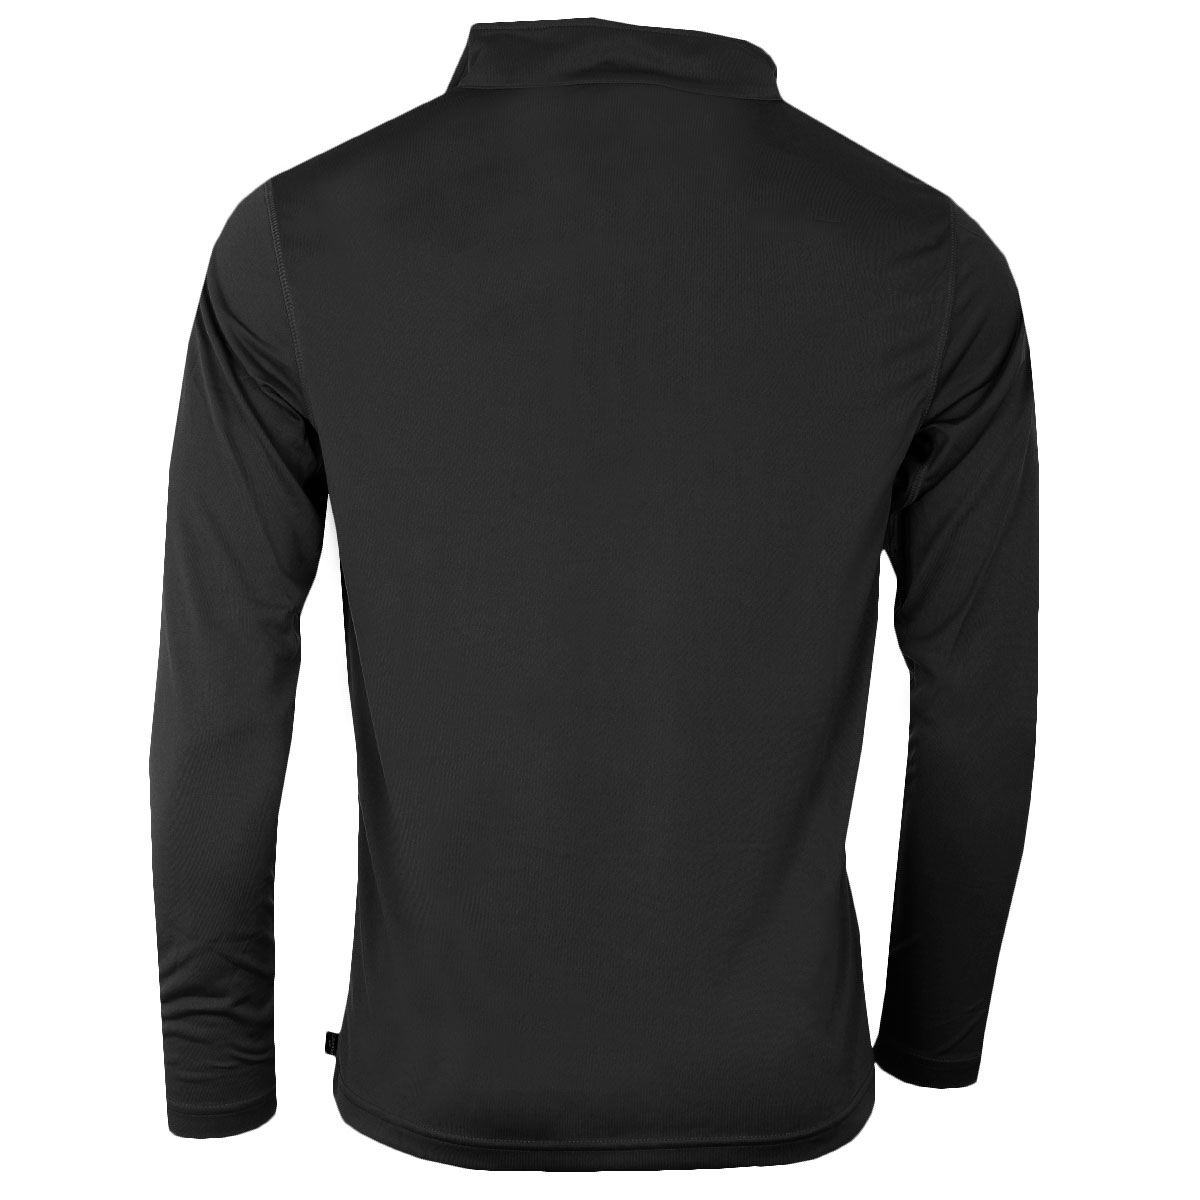 Calvin-Klein-Golf-Mens-2019-Harlem-1-4-Zip-Technical-CK-Sweater-28-OFF-RRP thumbnail 3